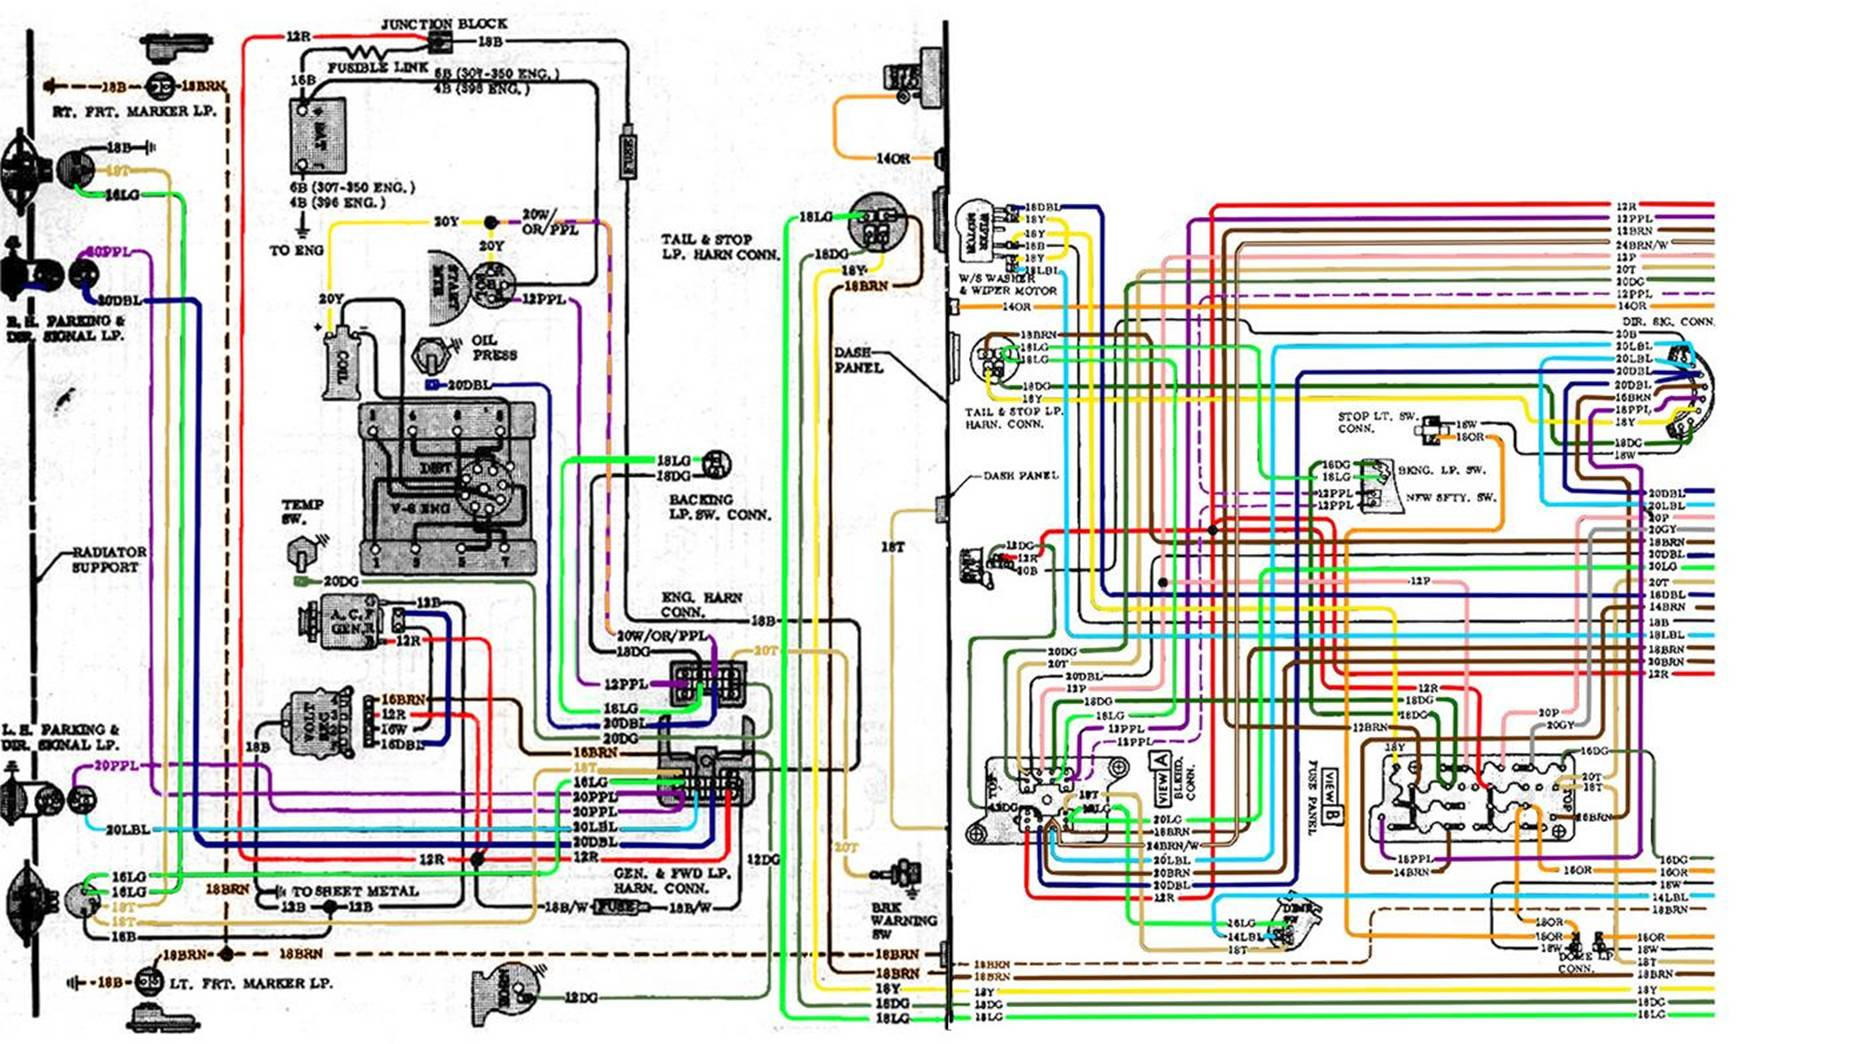 hight resolution of 67 gmc wiring harness wiring diagrams rh casamario de gm fuel pump wiring harness diagram gm